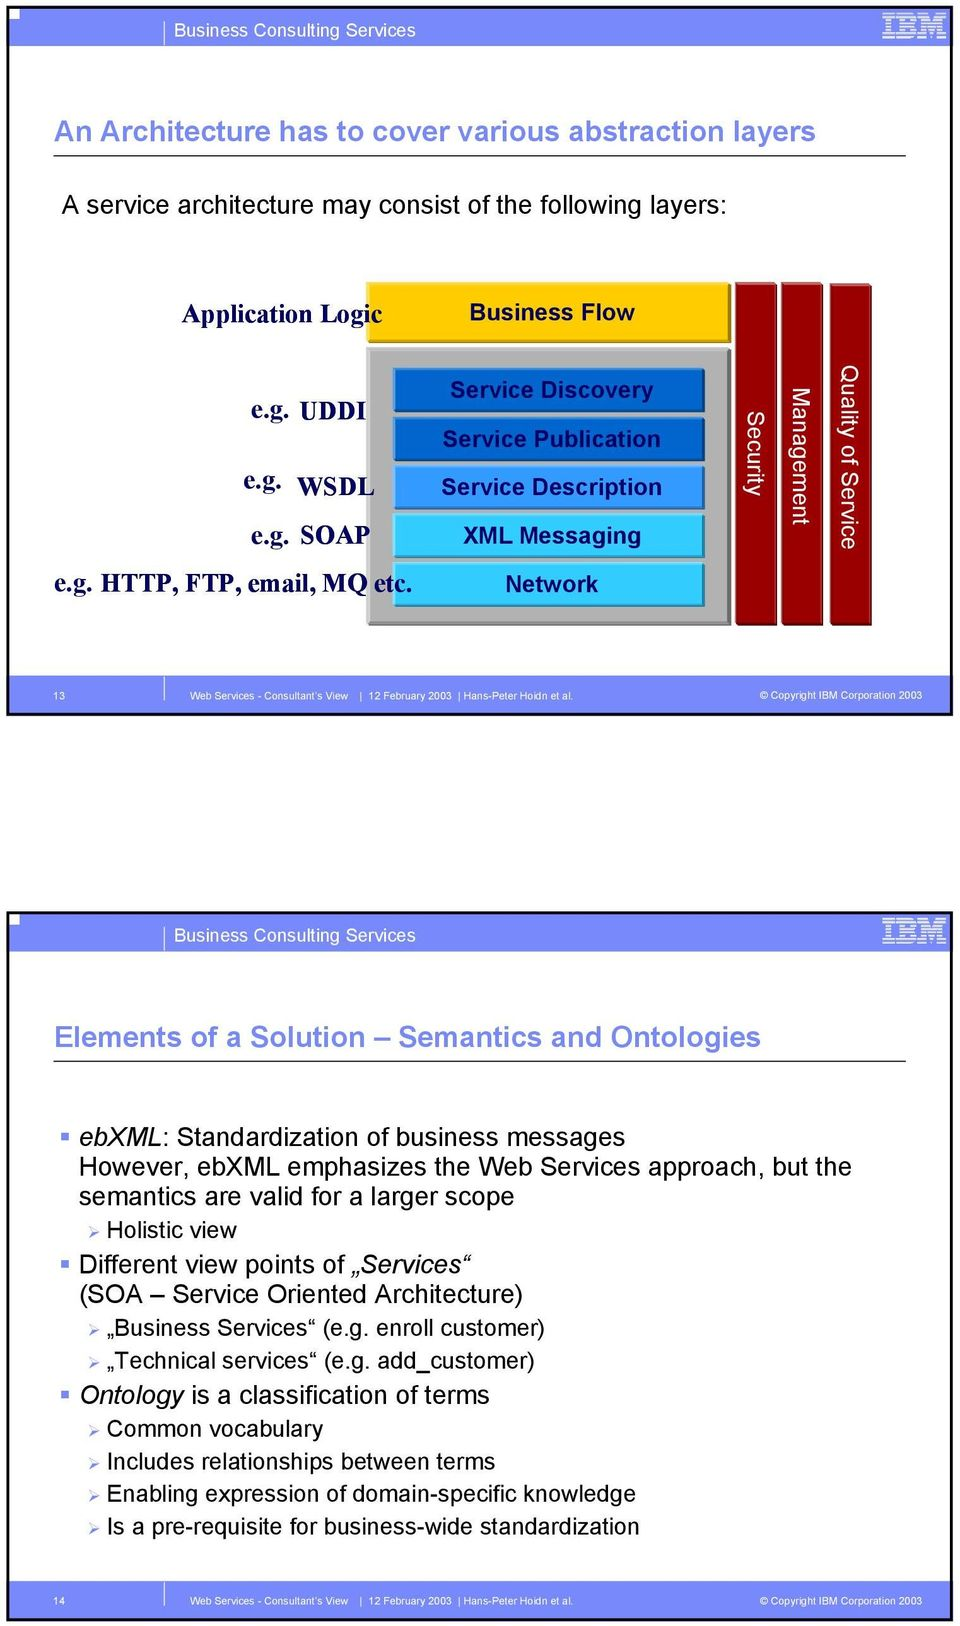 Network 13 Elements of a Solution Semantics and Ontologies ebxml: Standardization of business messages However, ebxml emphasizes the Web Services approach, but the semantics are valid for a larger